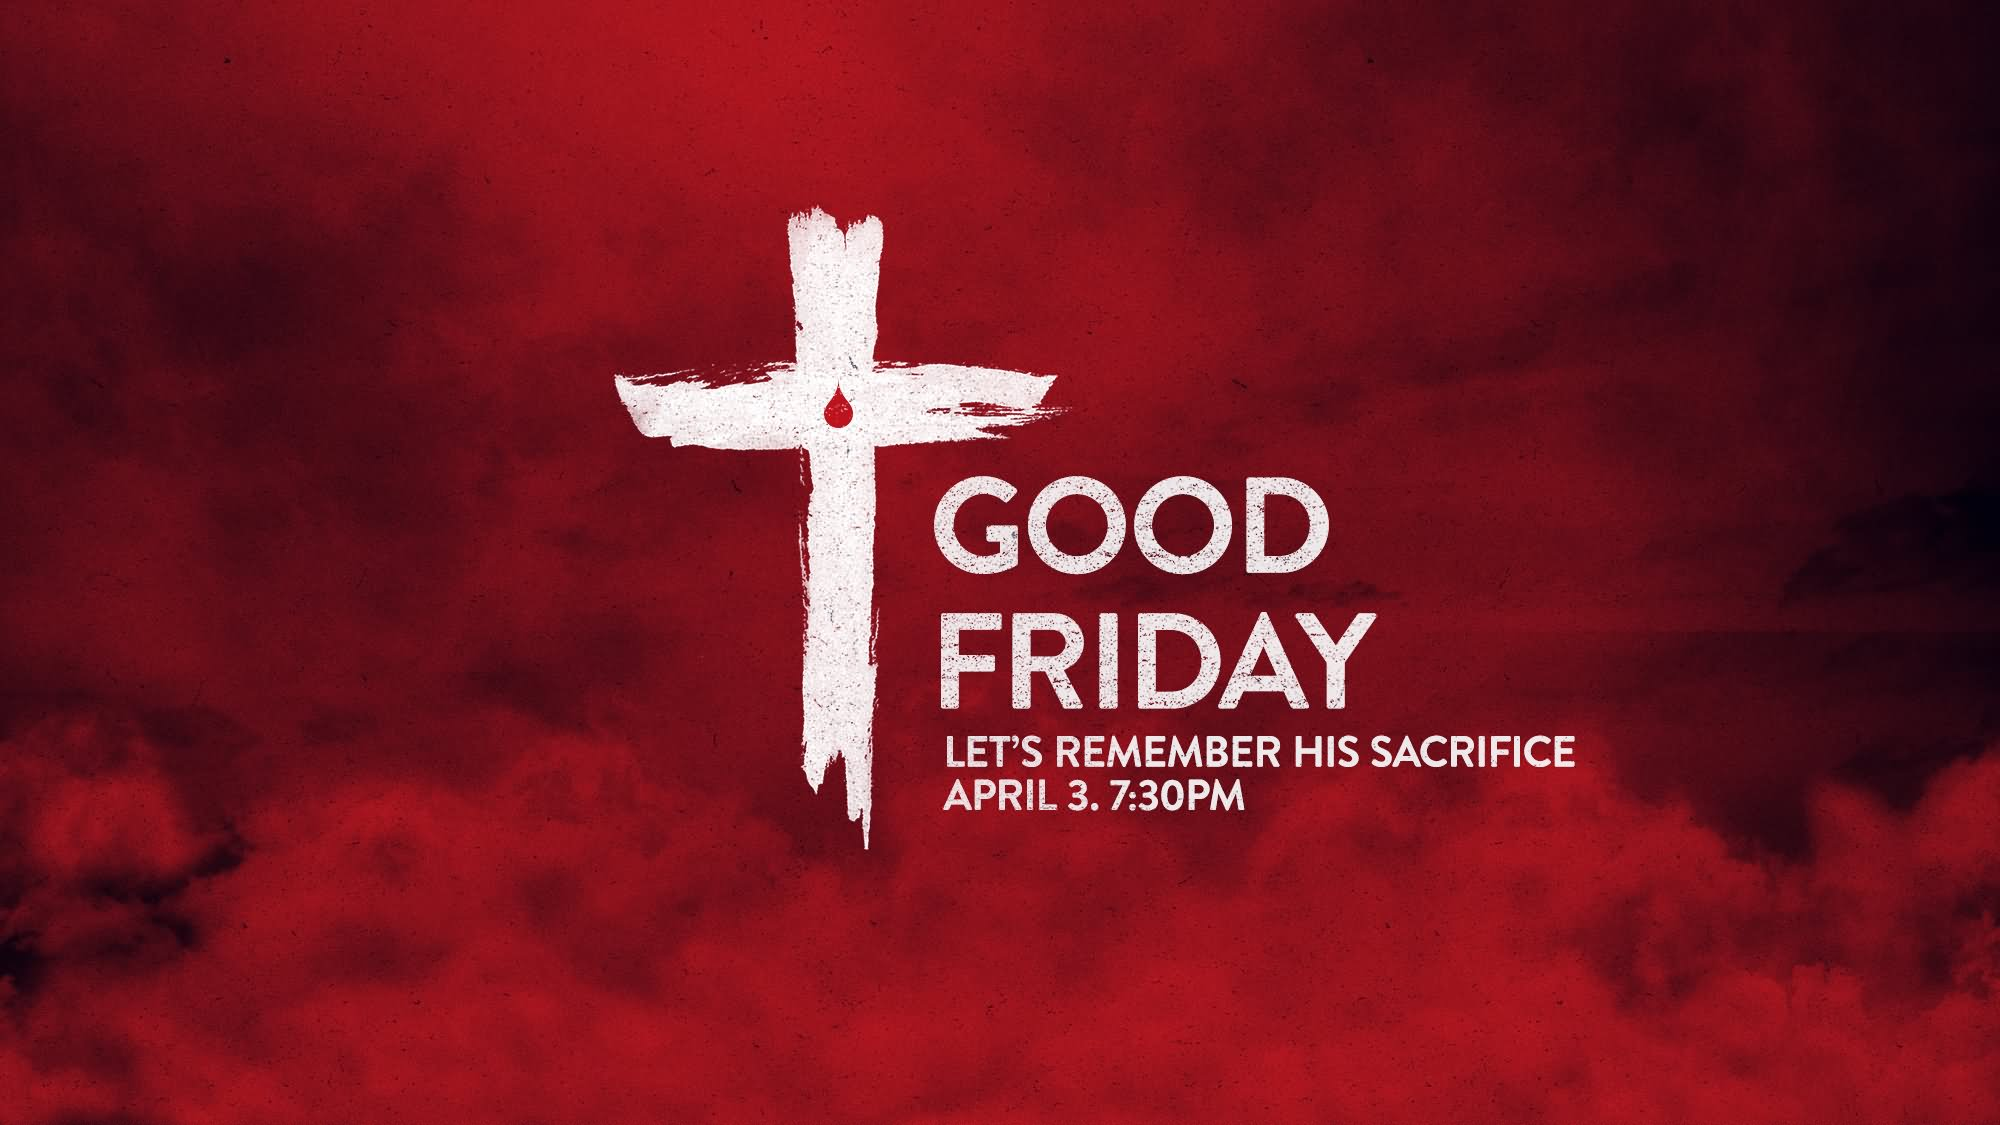 Good Friday Let's Remember His Sacrifice